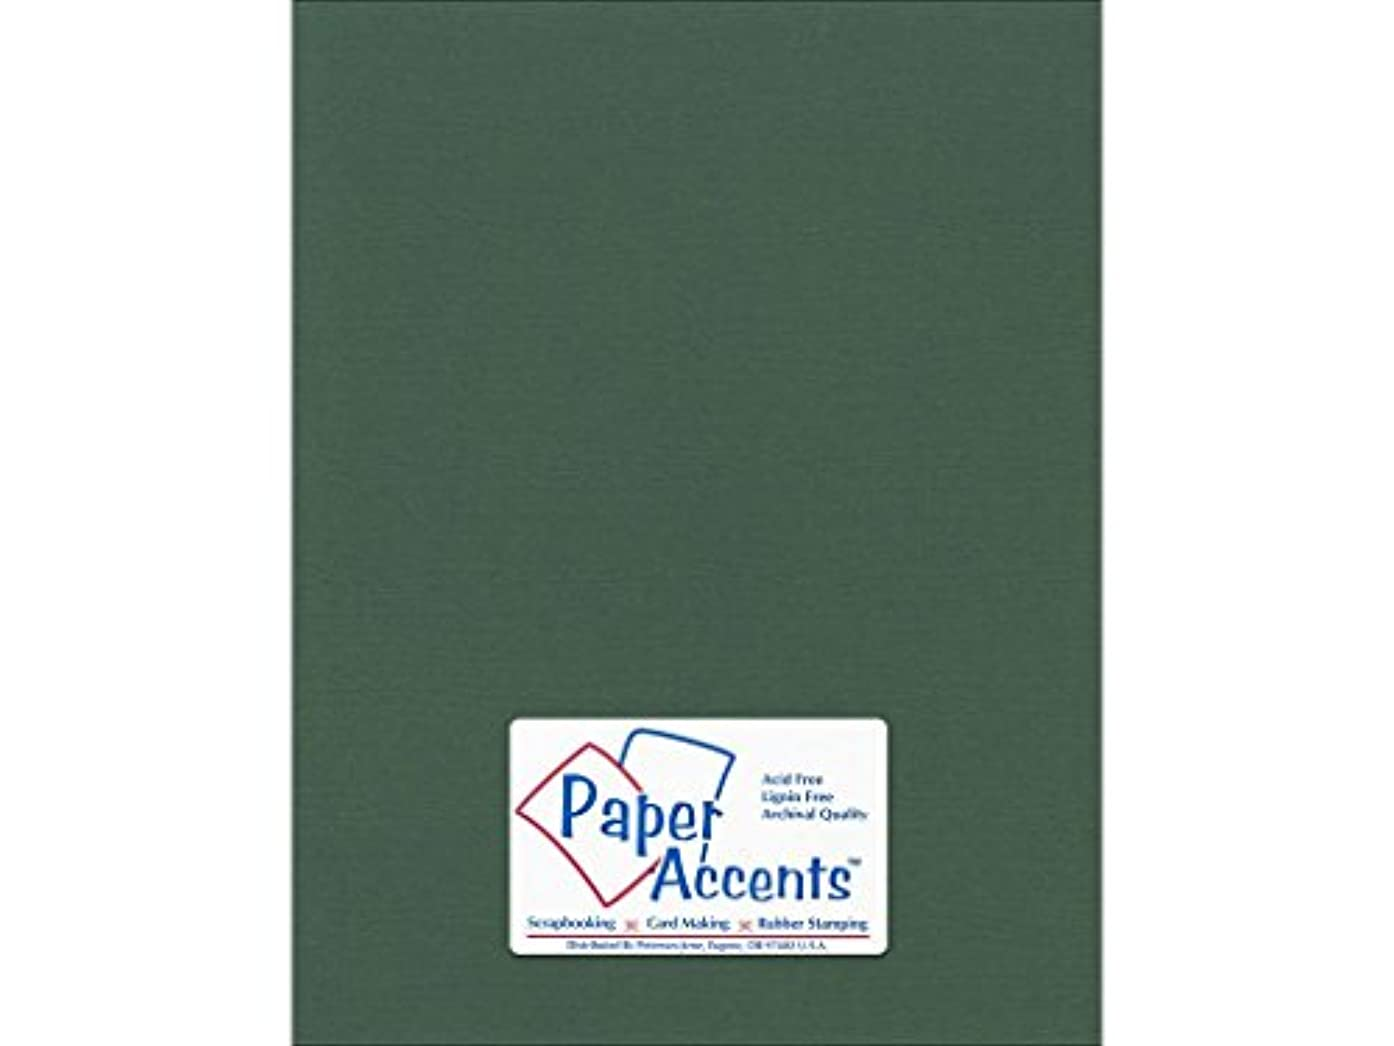 Accent Design Paper Accents Cdstk Canvas 8.5x11 80# Evergreen